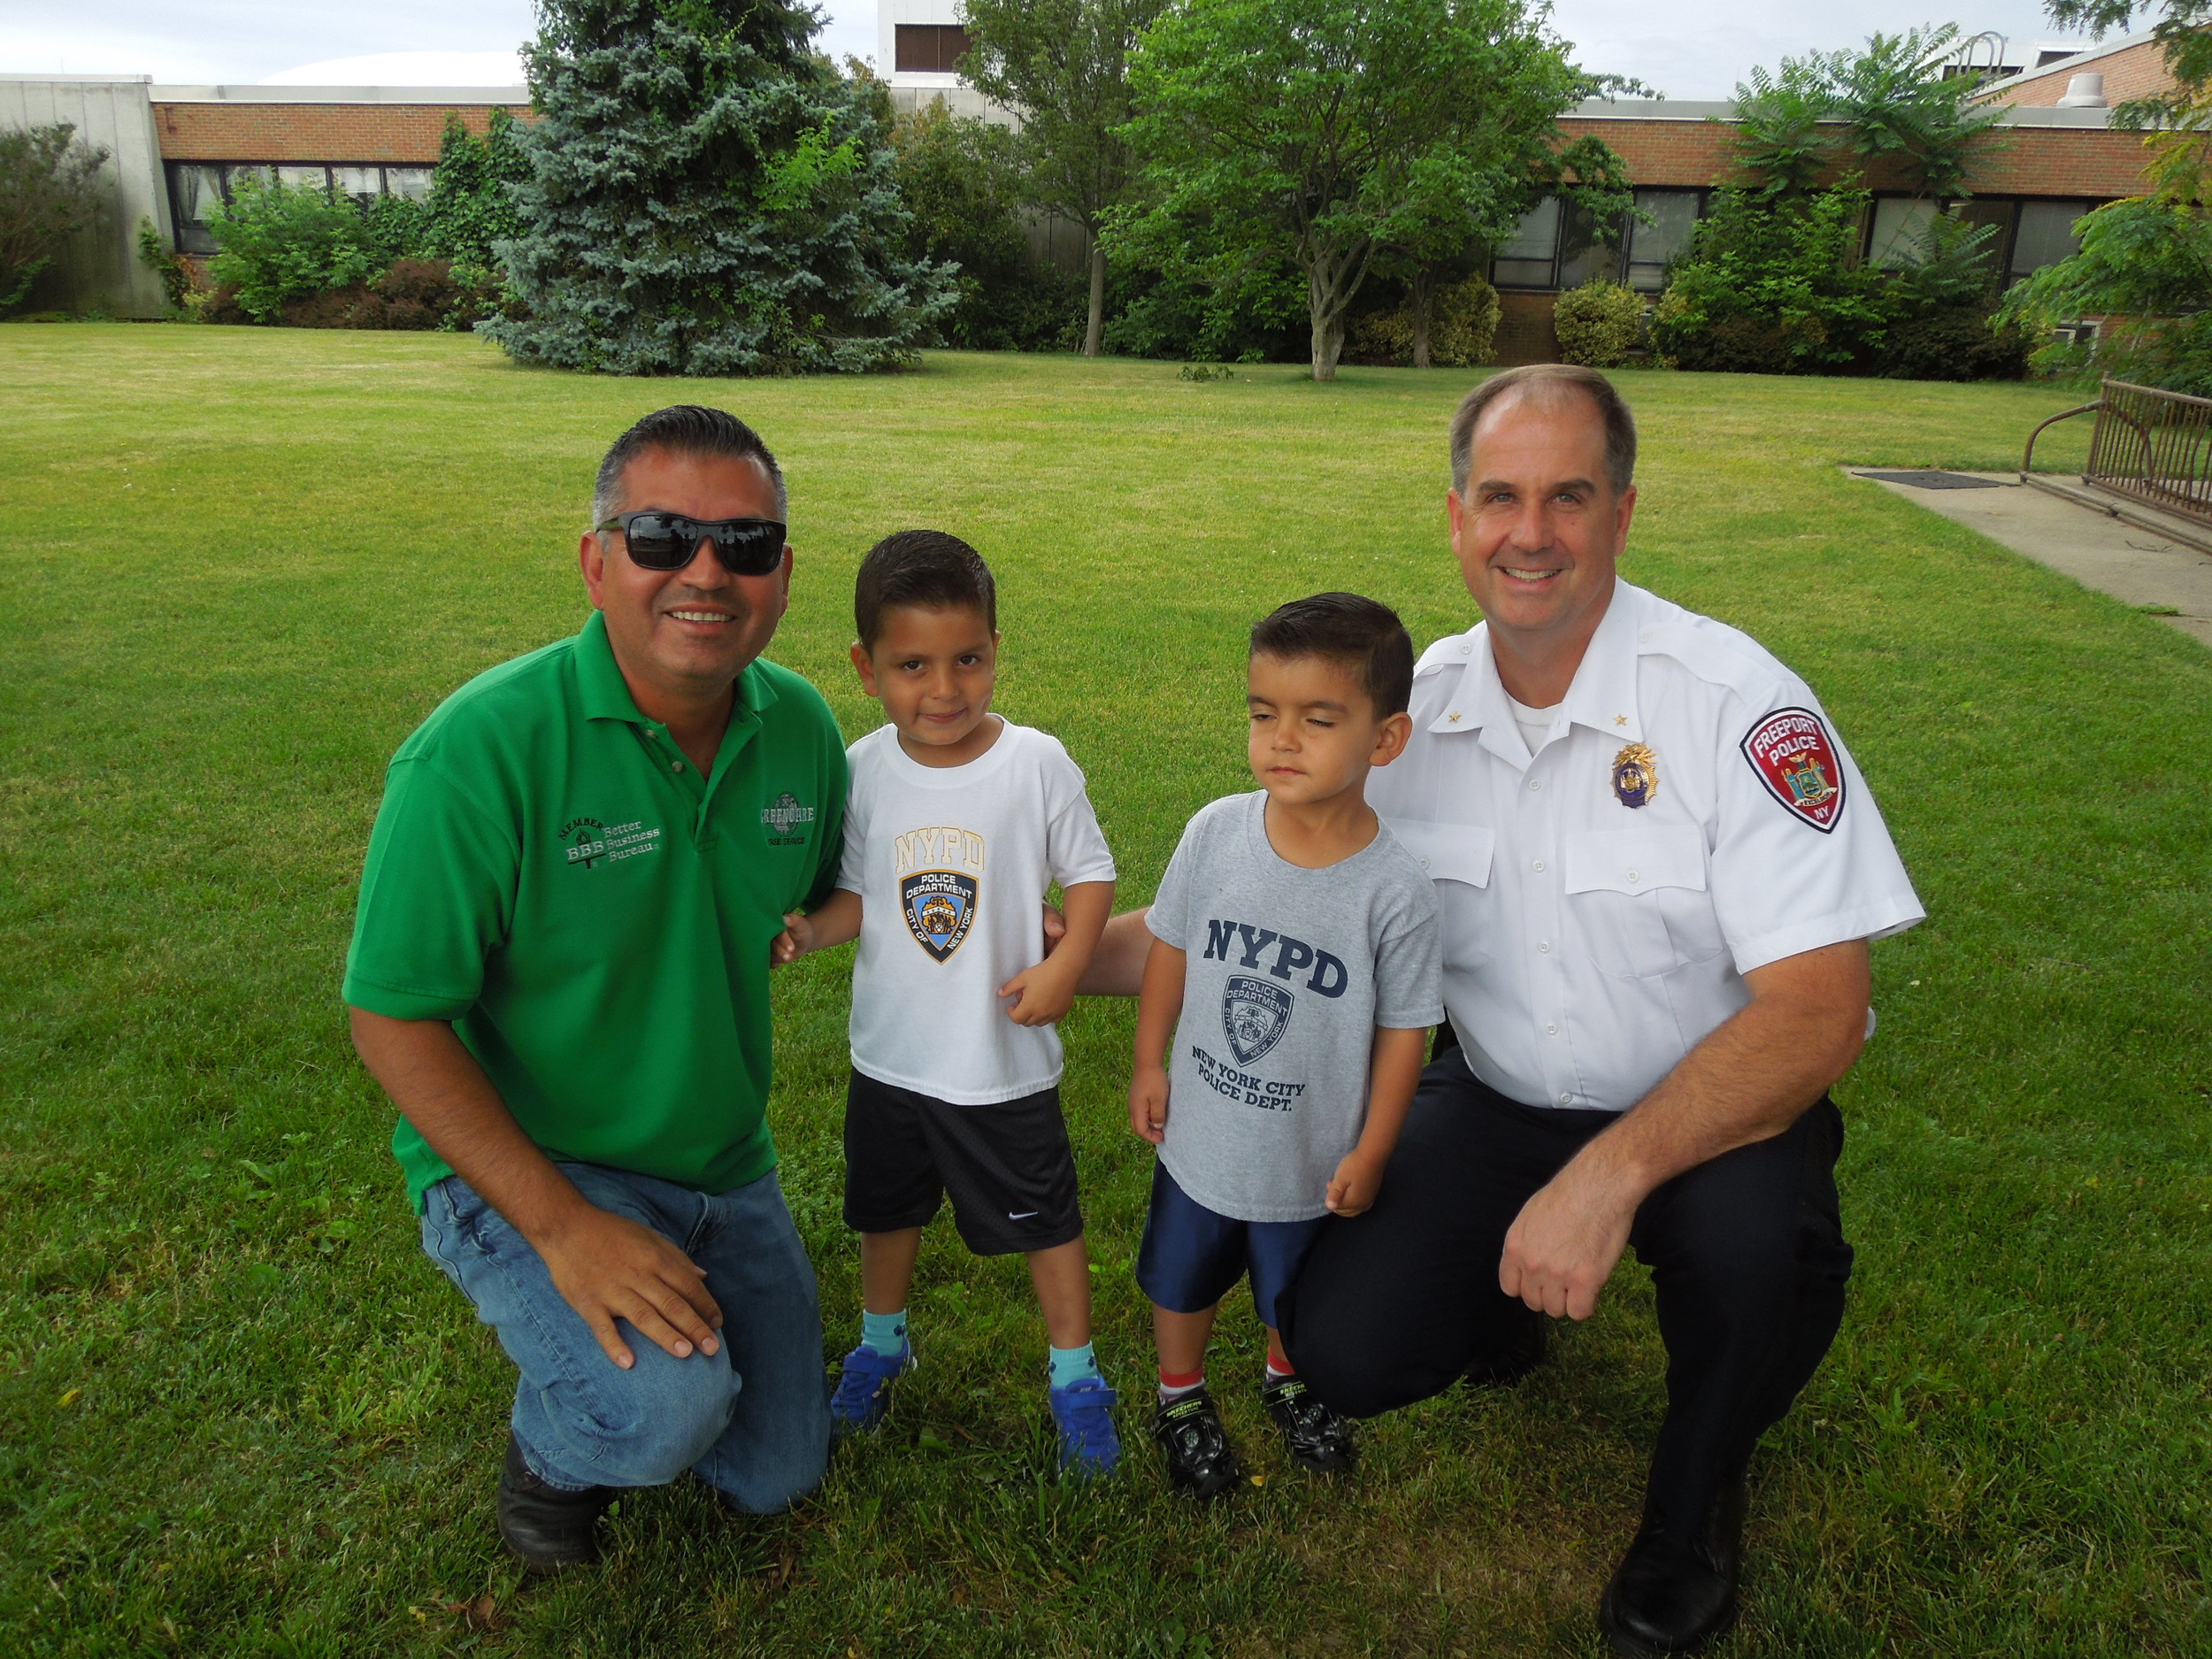 All in the family. Marlon Reyes poses with his boys, Matthew and Christian, and Deputy Police Chief Mike Smith. Reyes has two brothers who are police officers in Freeport